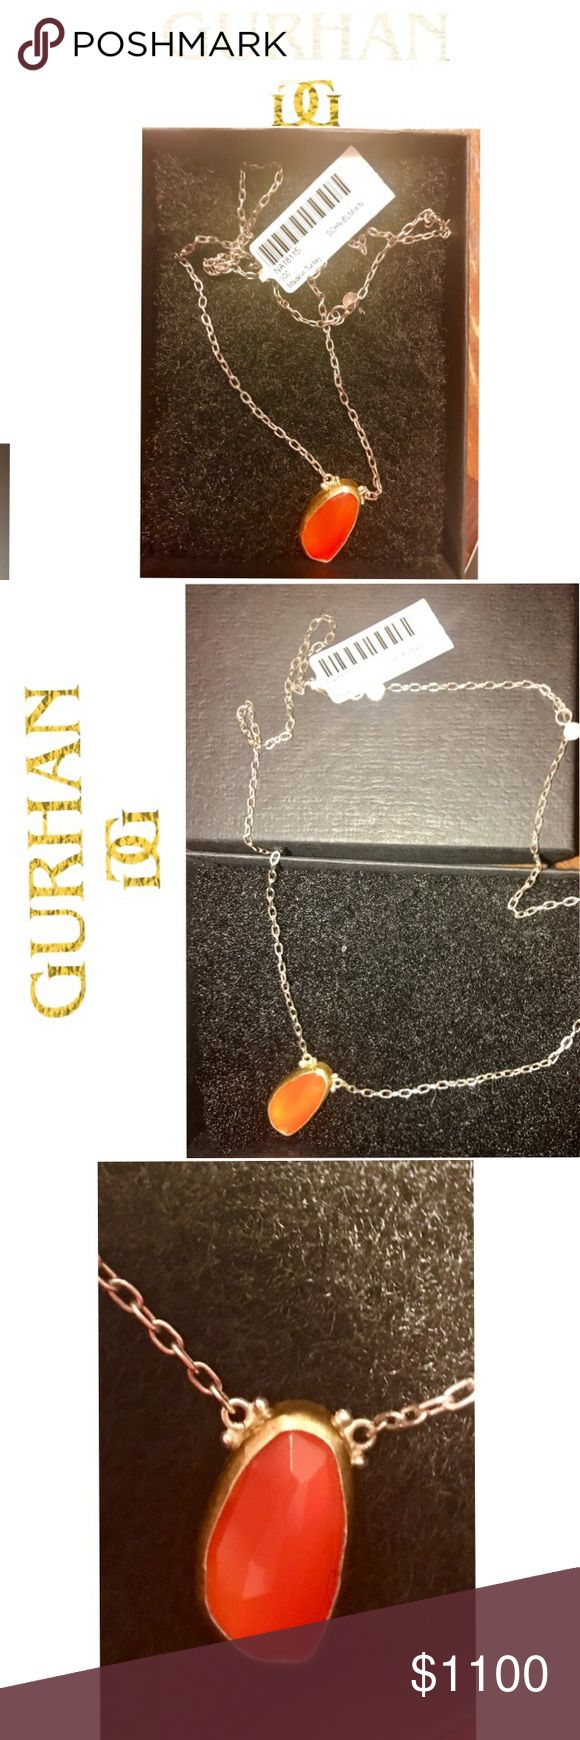 Gurhan Orange Citrine One of a Kind 24k Necklace This one of a kind necklace from Designer Gurhan is custom made and one of a kind. The gem stone is orange Citrine, a beautiful color for summer. It is surrounded in 25k hammered gold, the back is sterling silver and the chain is 18k white gold. The Retail is $3200 and was purchased at SAKS Fifth Ave. It is a very special necklace from a very famous jewelry designer. He designs to many celebrities for red carpet events. The chain is an 18inch…